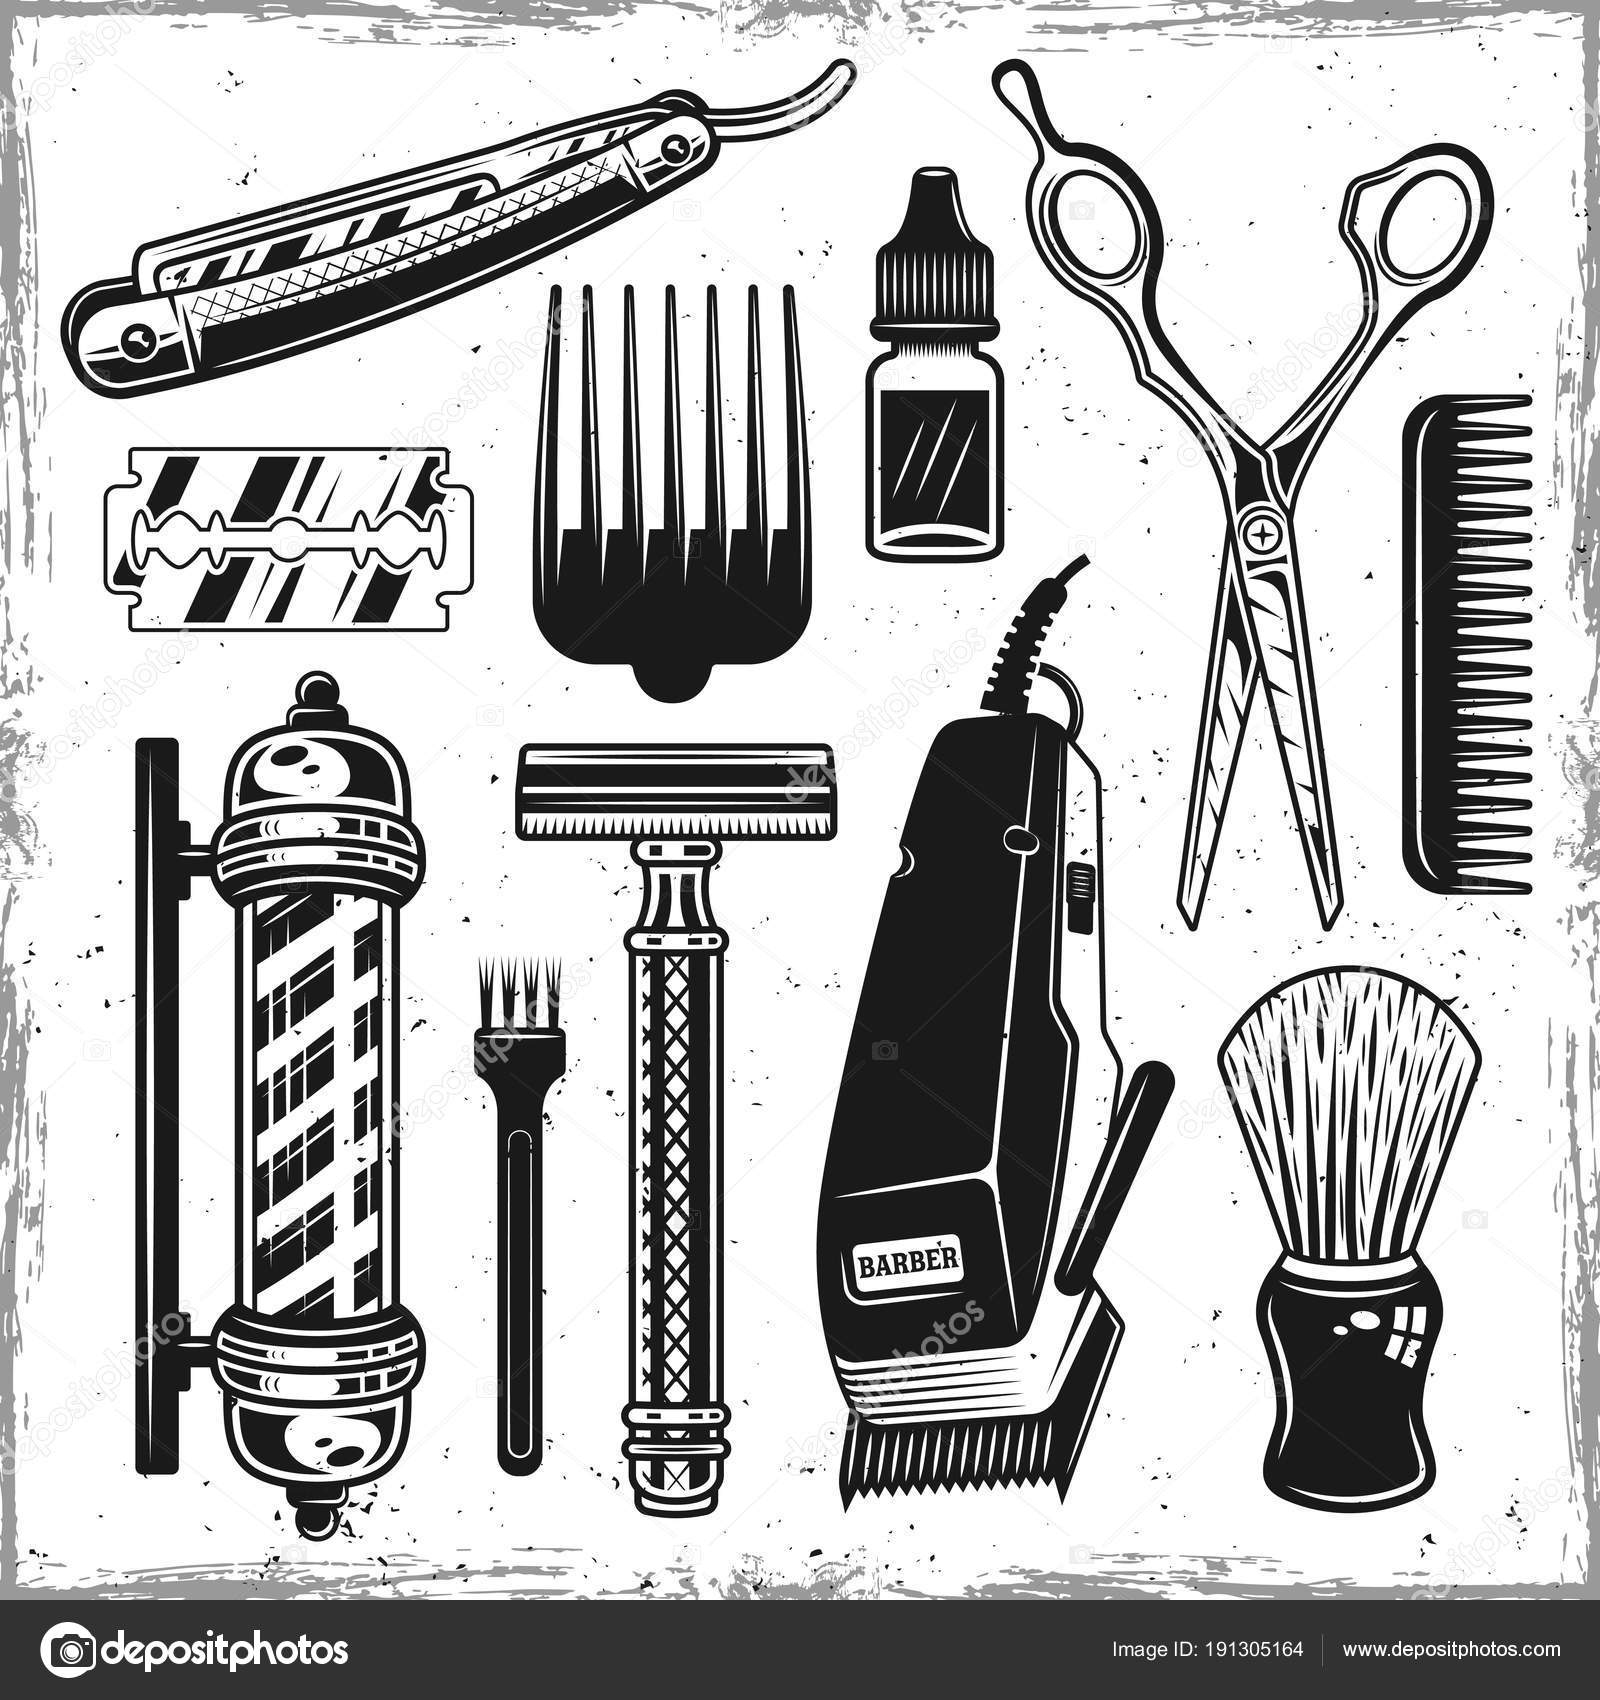 Hairdressers Tools And Barbershop Vintage Elements Stock Vector